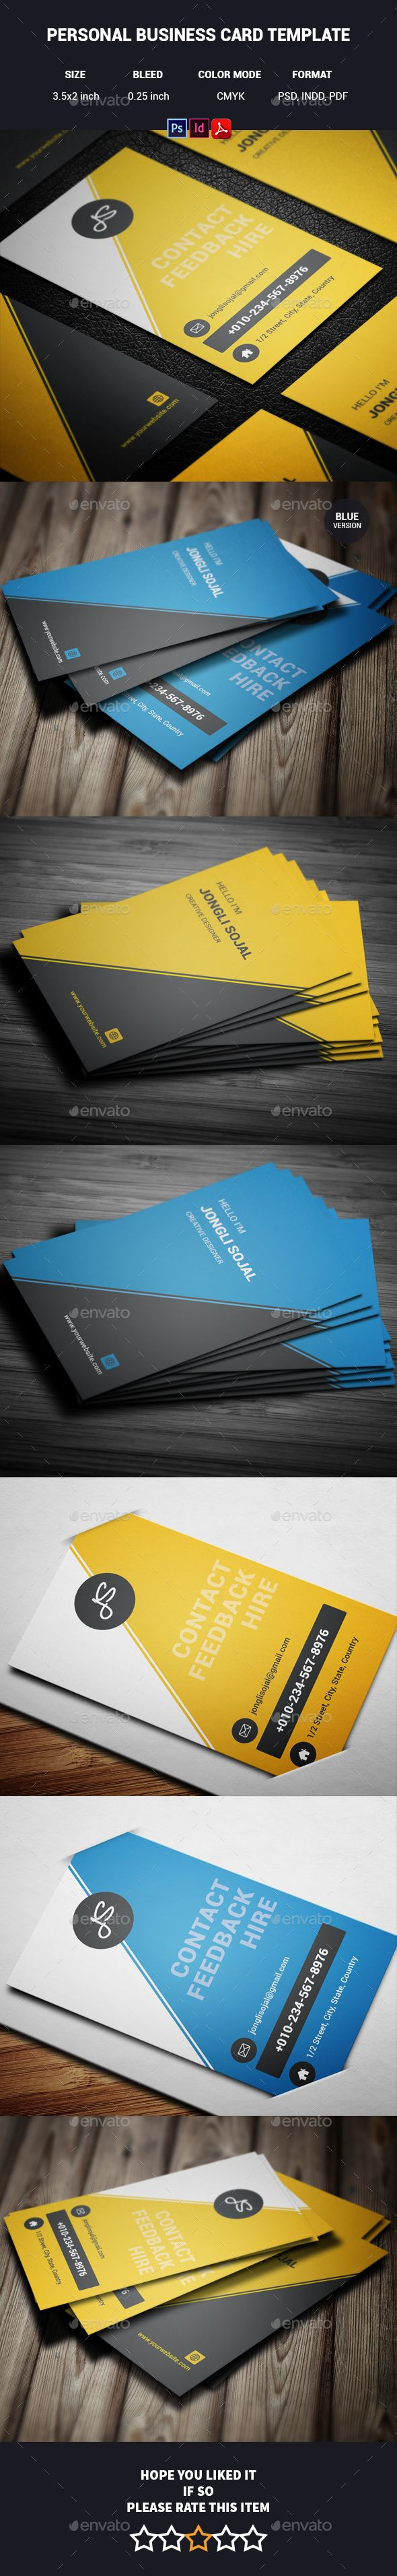 Personal Business Card Template — Photoshop PSD #business card #yellow • Available here → https://graphicriver.net/item/personal-business-card-template/14264682?ref=pxcr